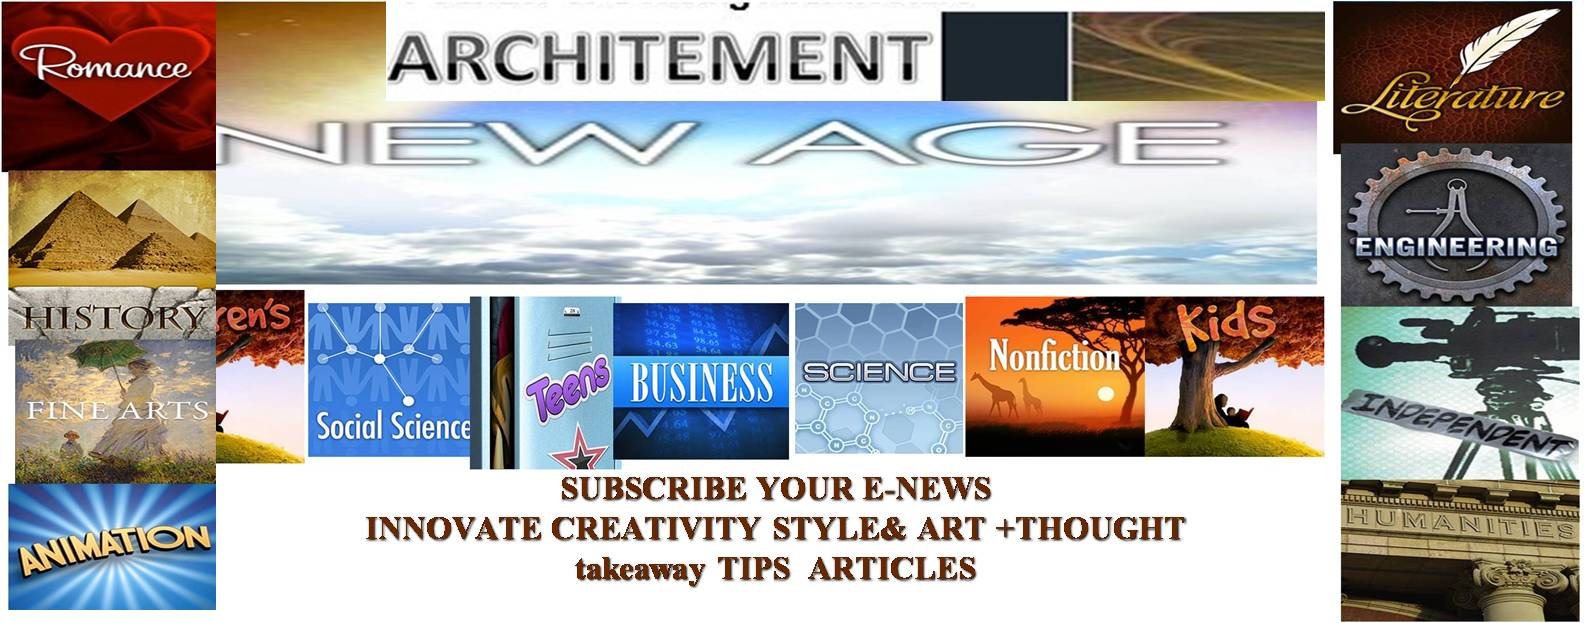 ARCHITAMENT E-NEWS VISIONARY KEYNOTES-ARTICLES,INTERACTIVE PRESENTATIONS,TAKEAWAY TIPS&GUIDES AND MUCH MORE!!!